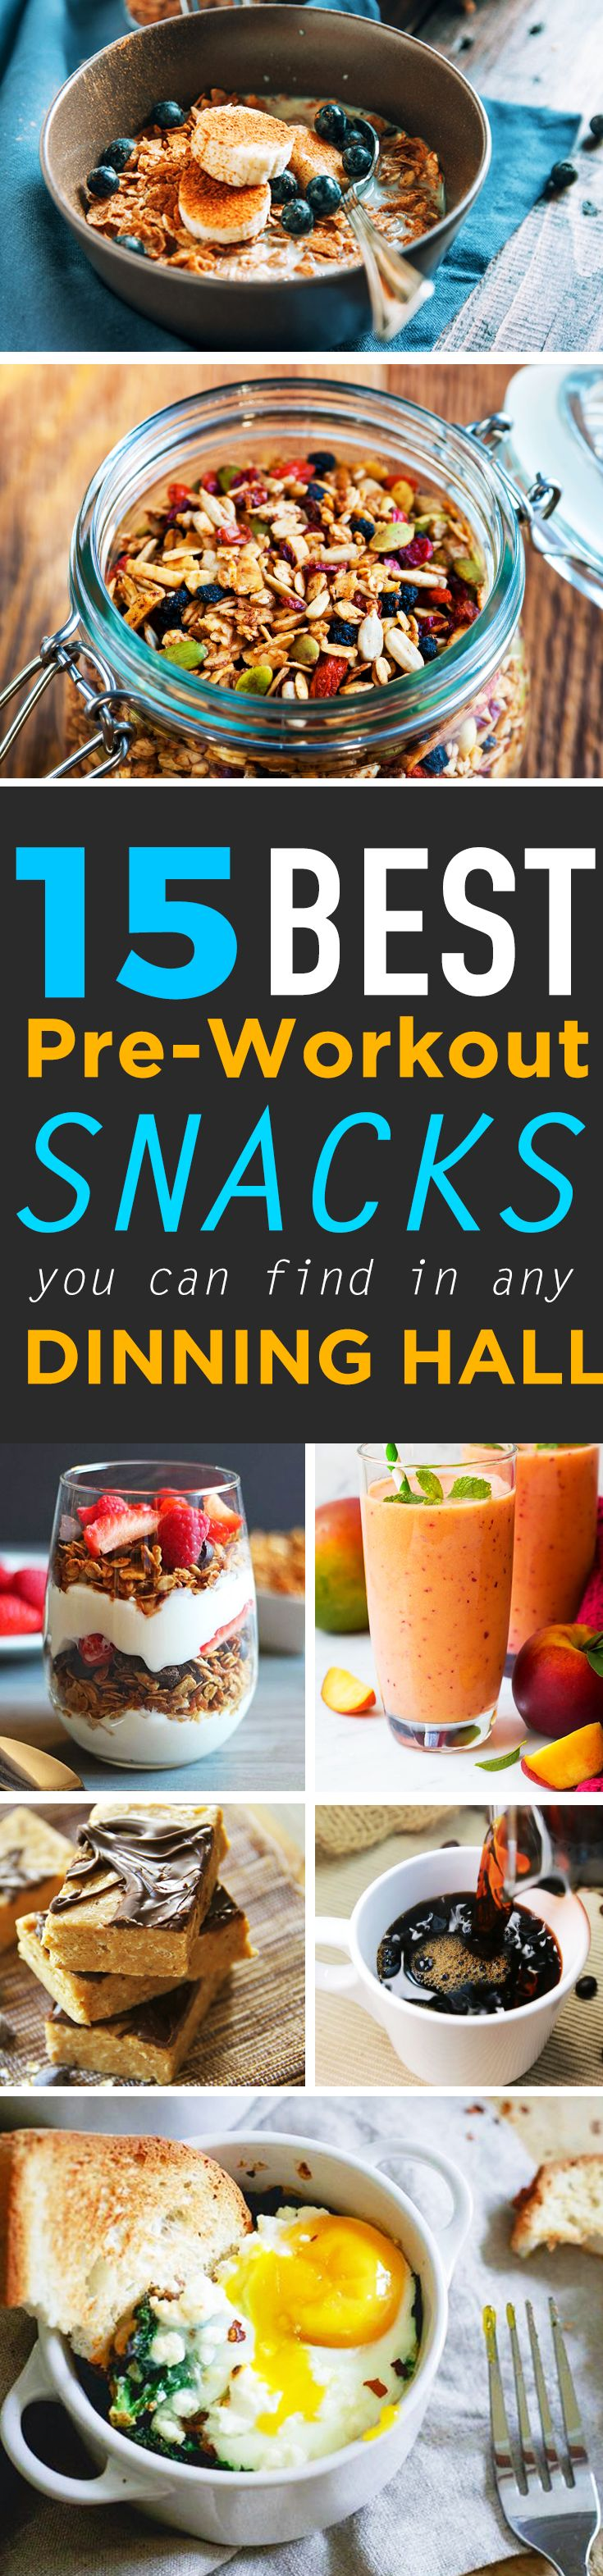 The 15 Best Pre-Workout Snacks You Can Find In Any Dining Hall – SOCIETY19 #healthyeatingincollege